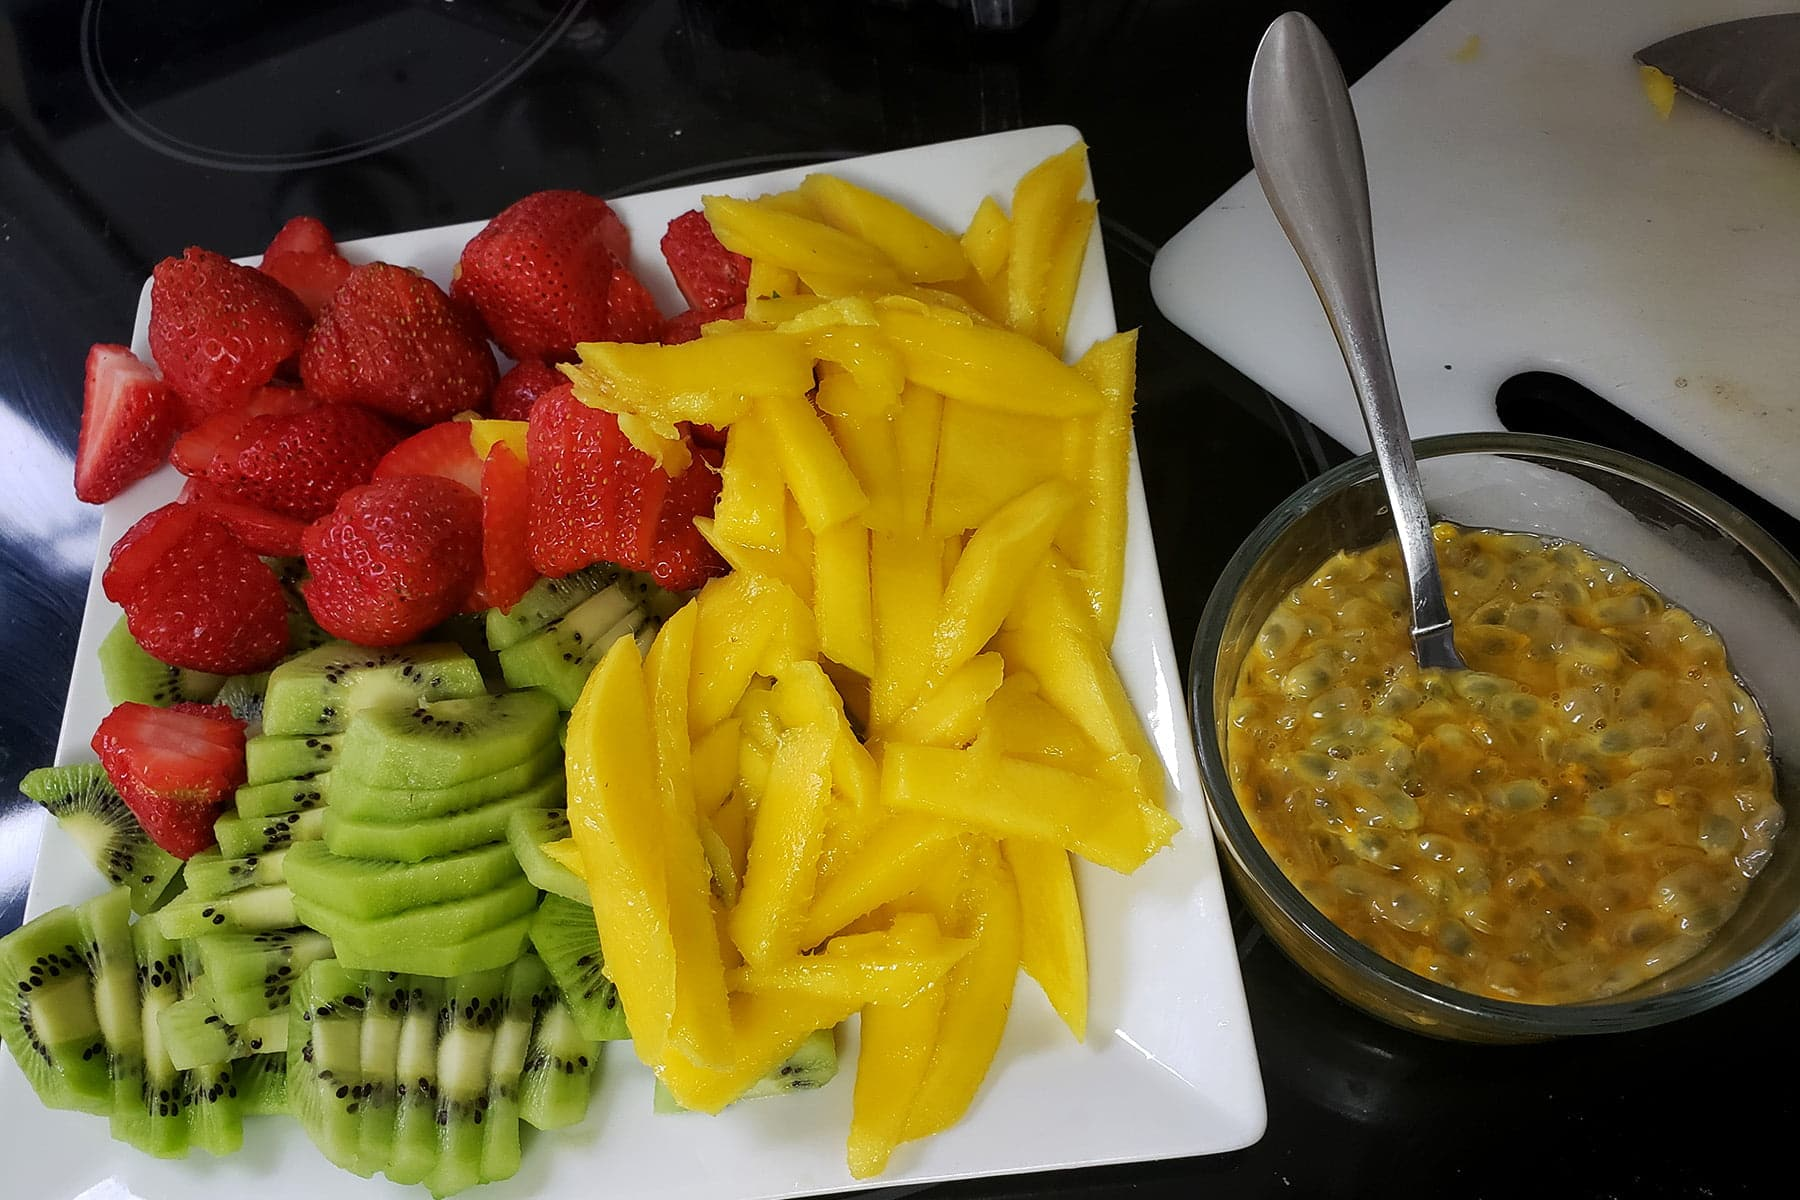 A plate of sliced mango, strawberry, and kiwi is resting next to a bowl of passionfruit guts.